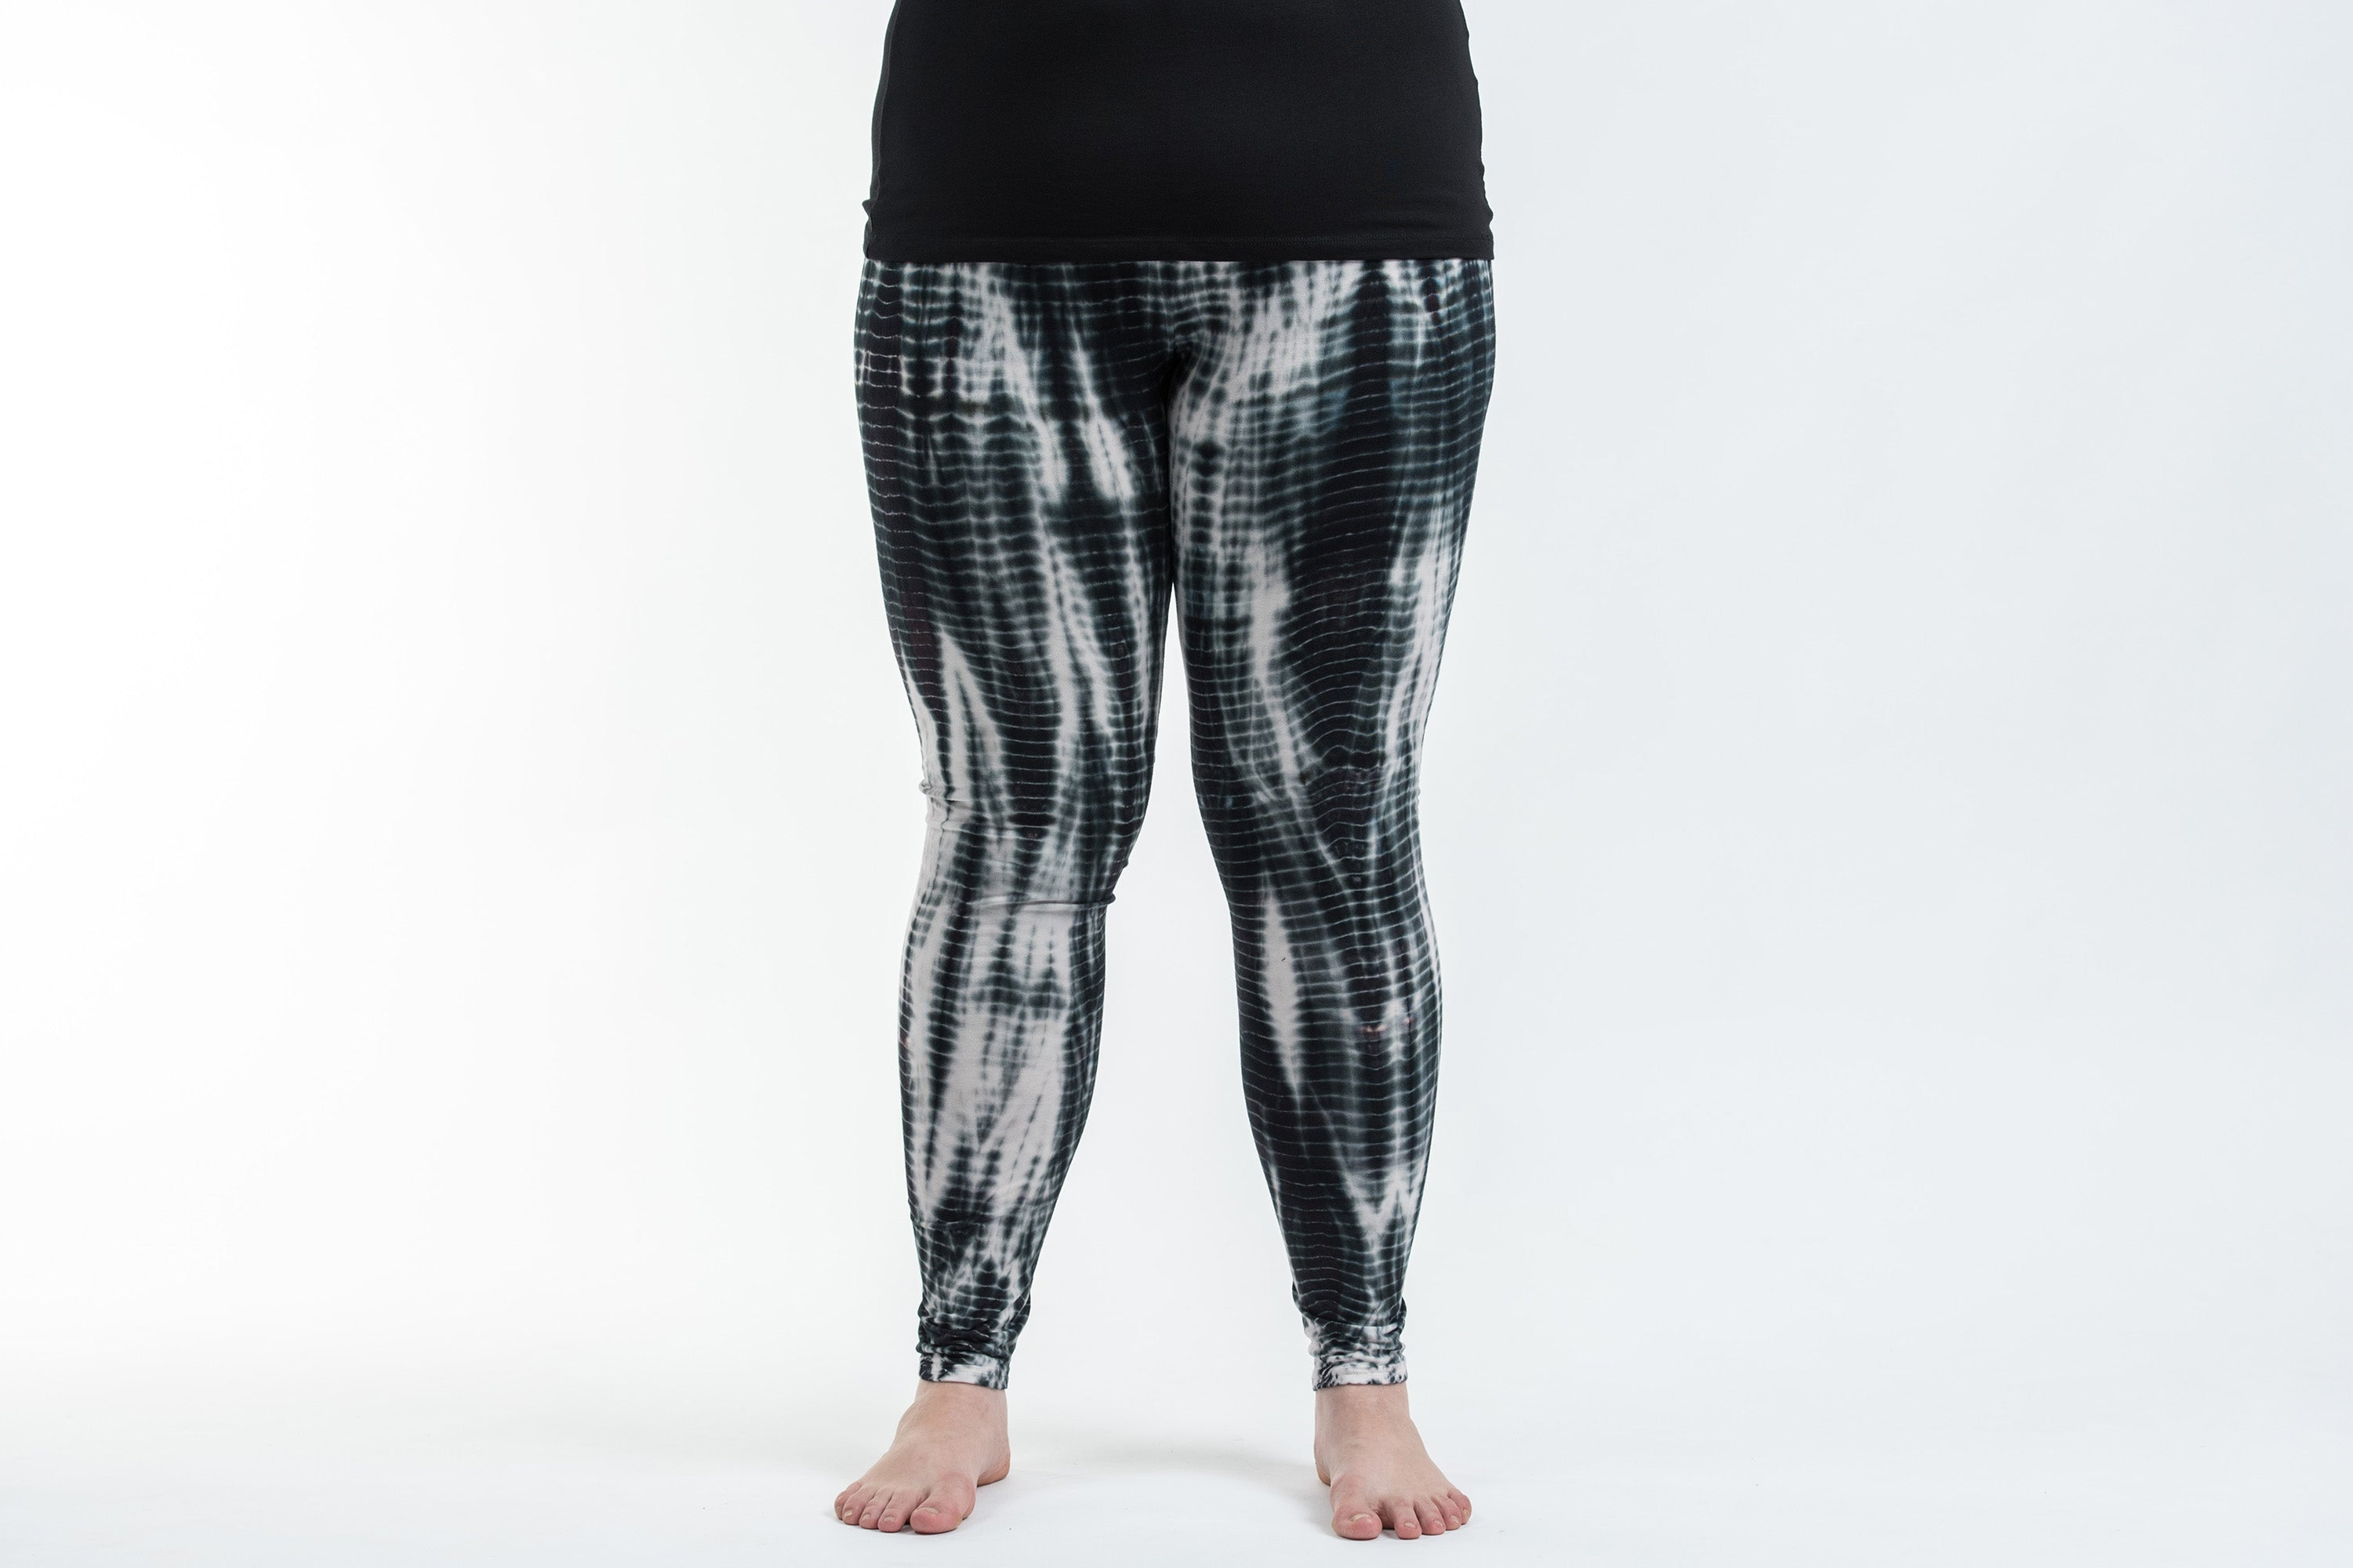 Red Black and White Geometric Leggings  Soft Stretch Pants for Women  Checkered Pattern  Unique Leggings  Womens Yoga Pants